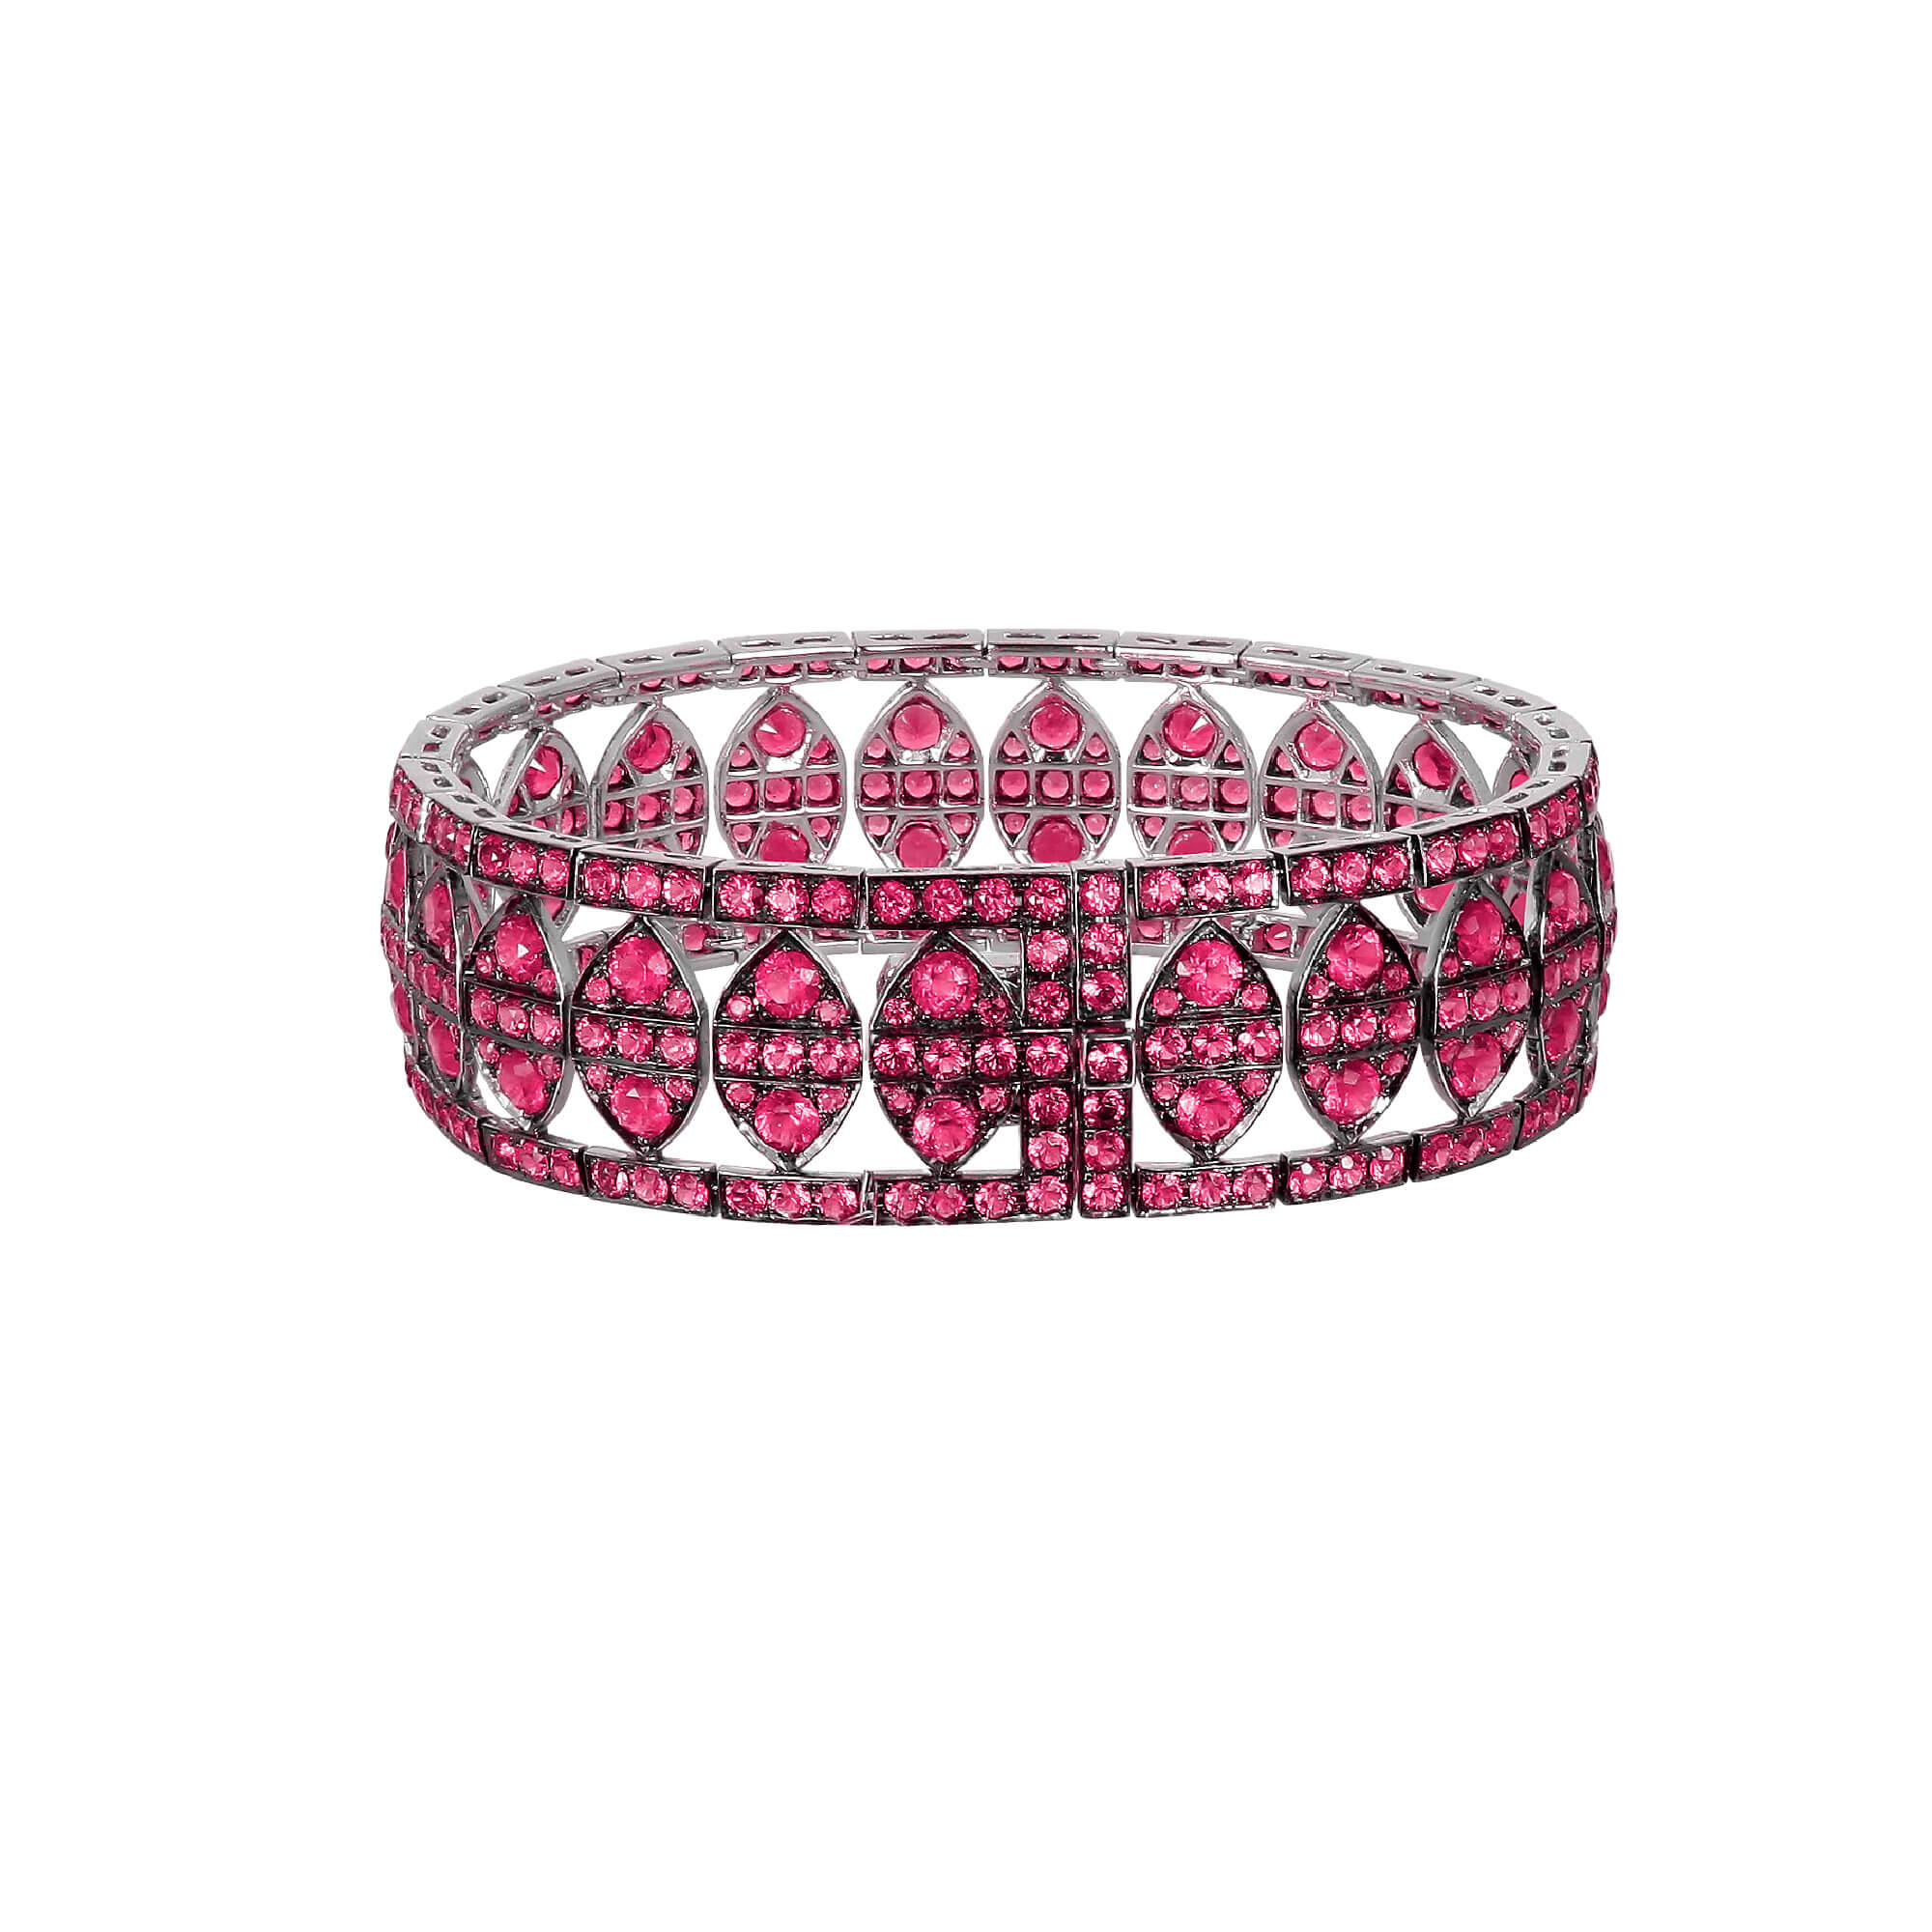 White Gold New York Bracelet With Rubies | Deco